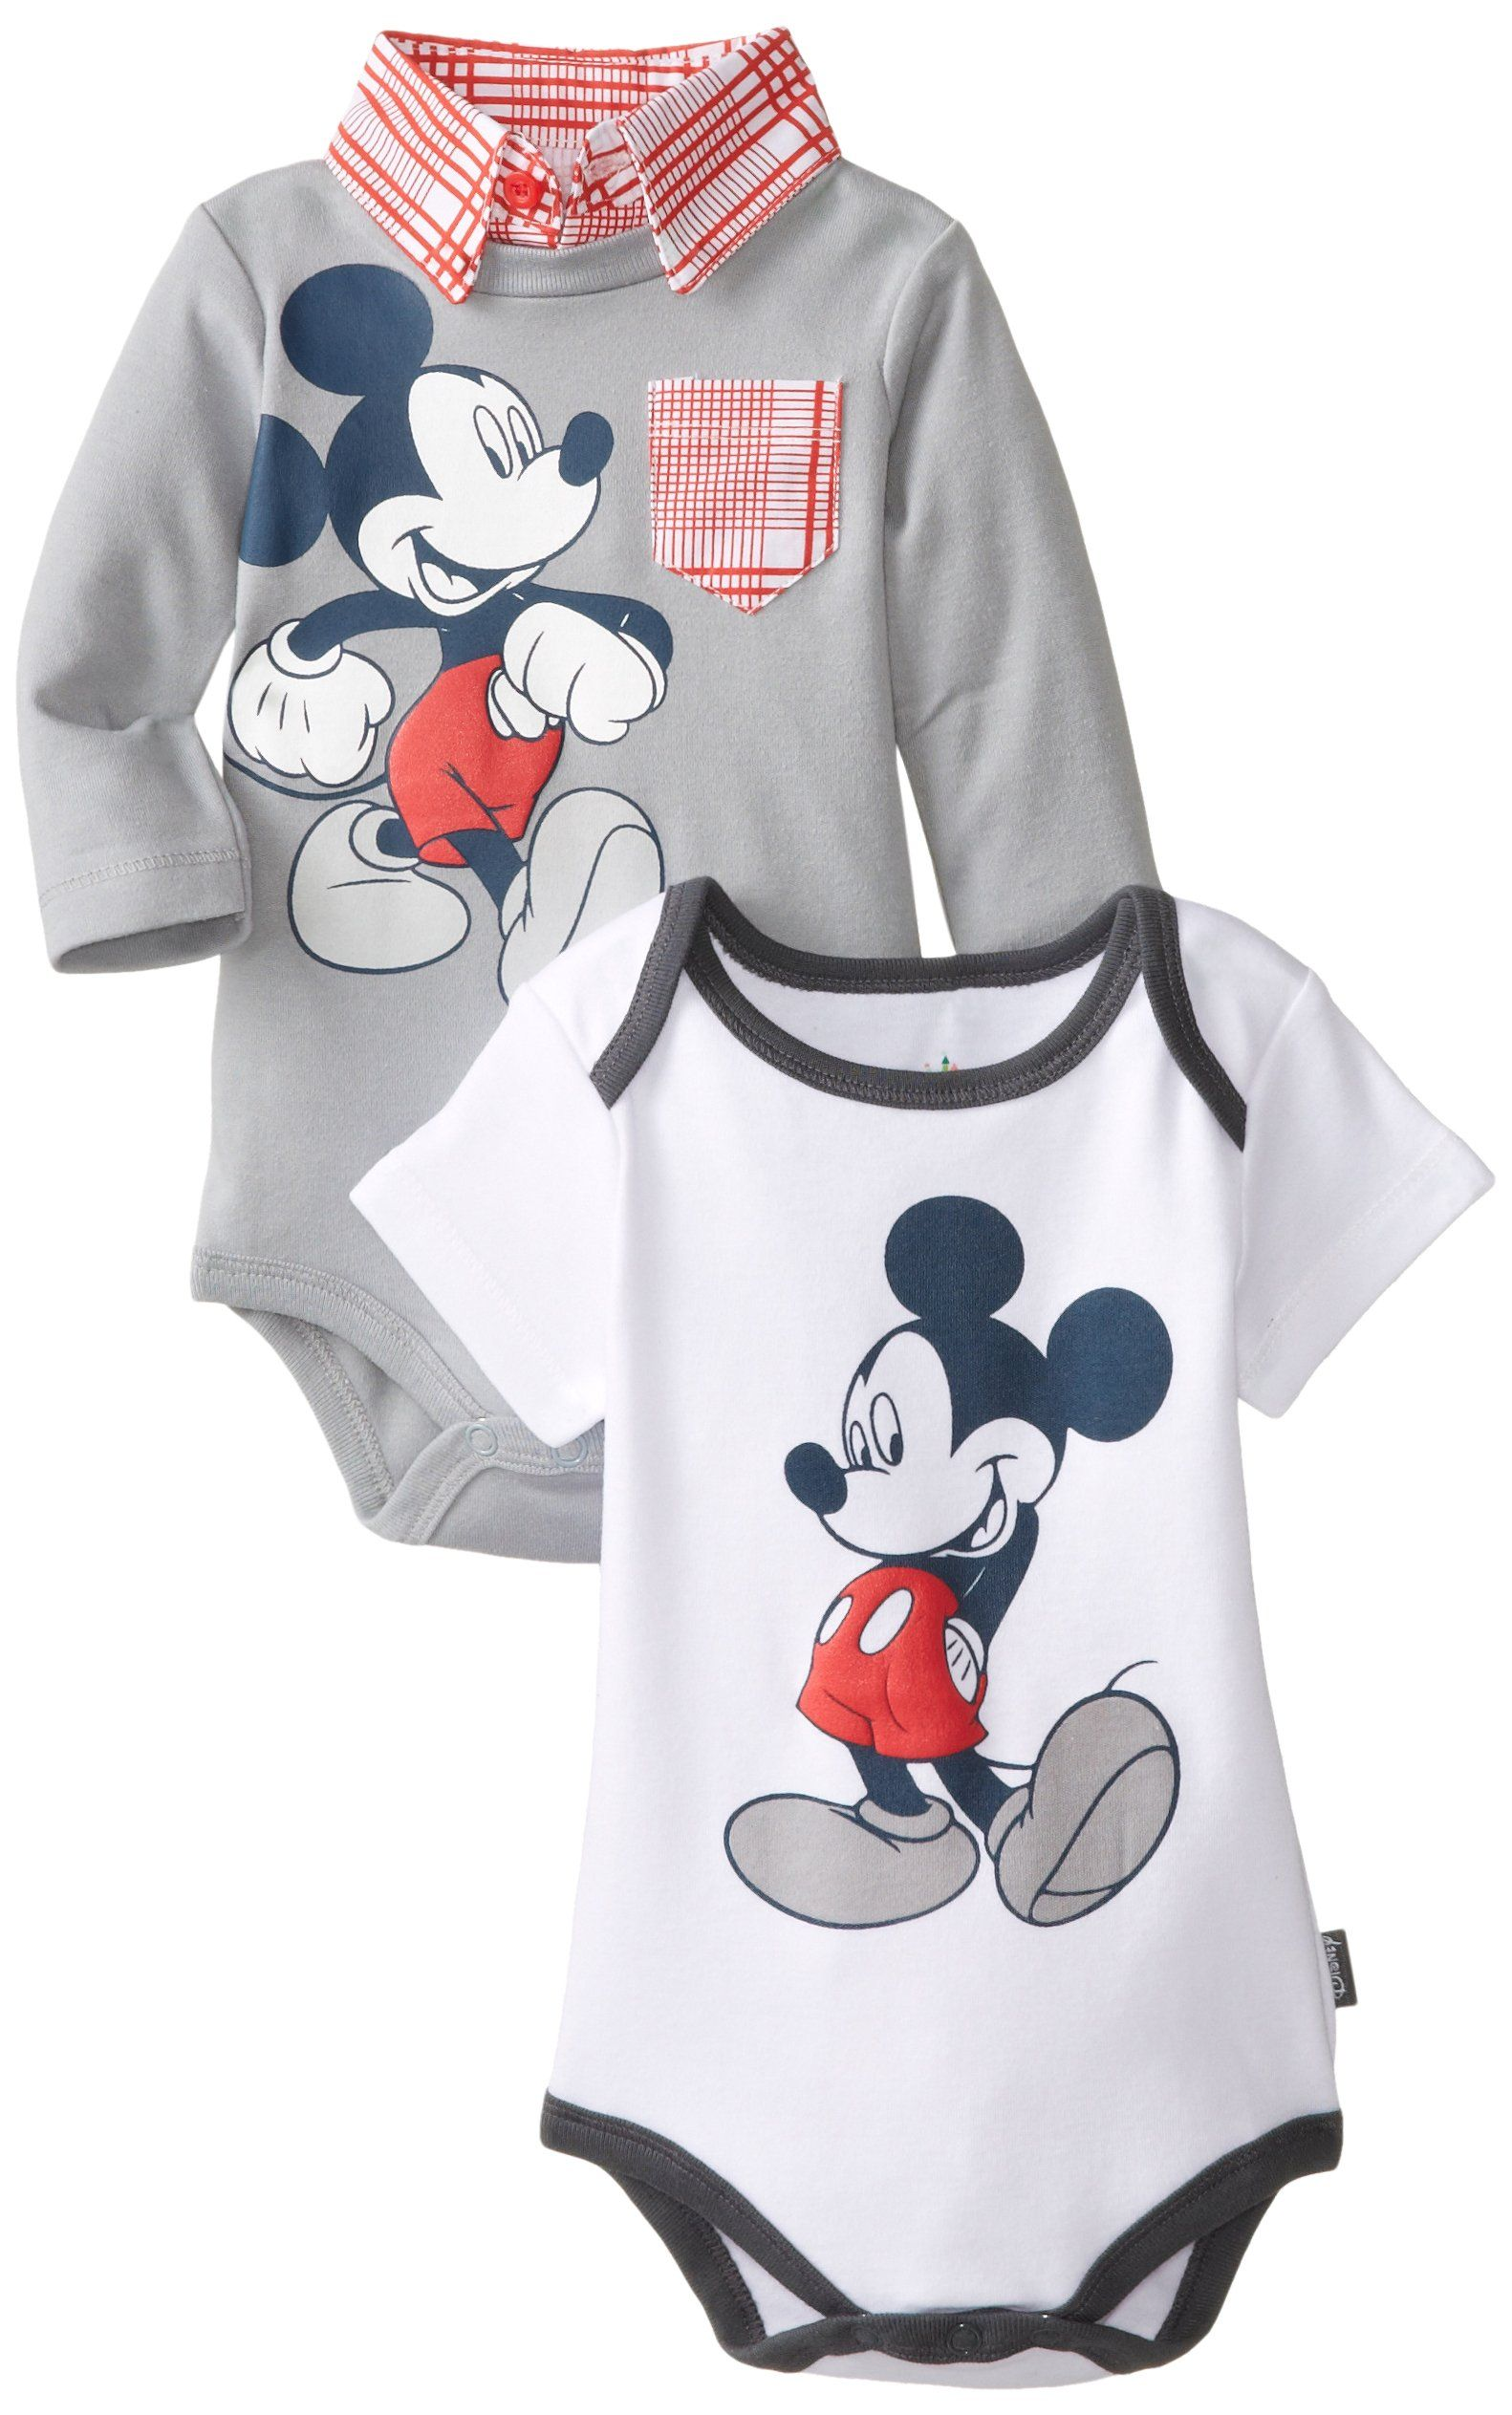 Disney Baby Boys Mickey Mouse 2 Pack Bodysuits with Collar and